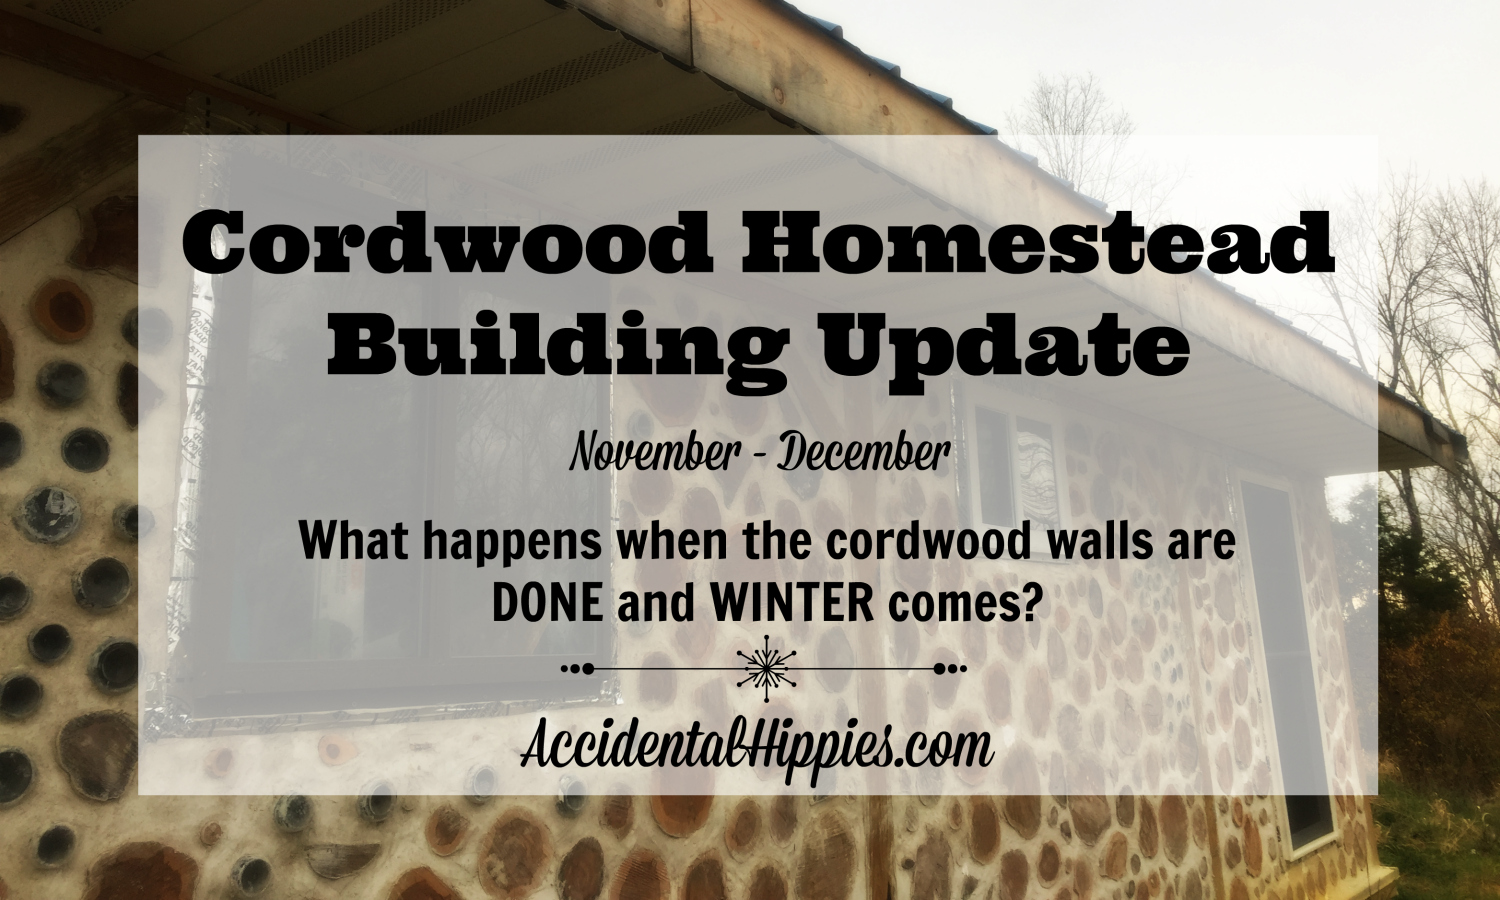 It took us 3 1/2 months to finish our cordwood walls. What are we doing now that they're DONE?